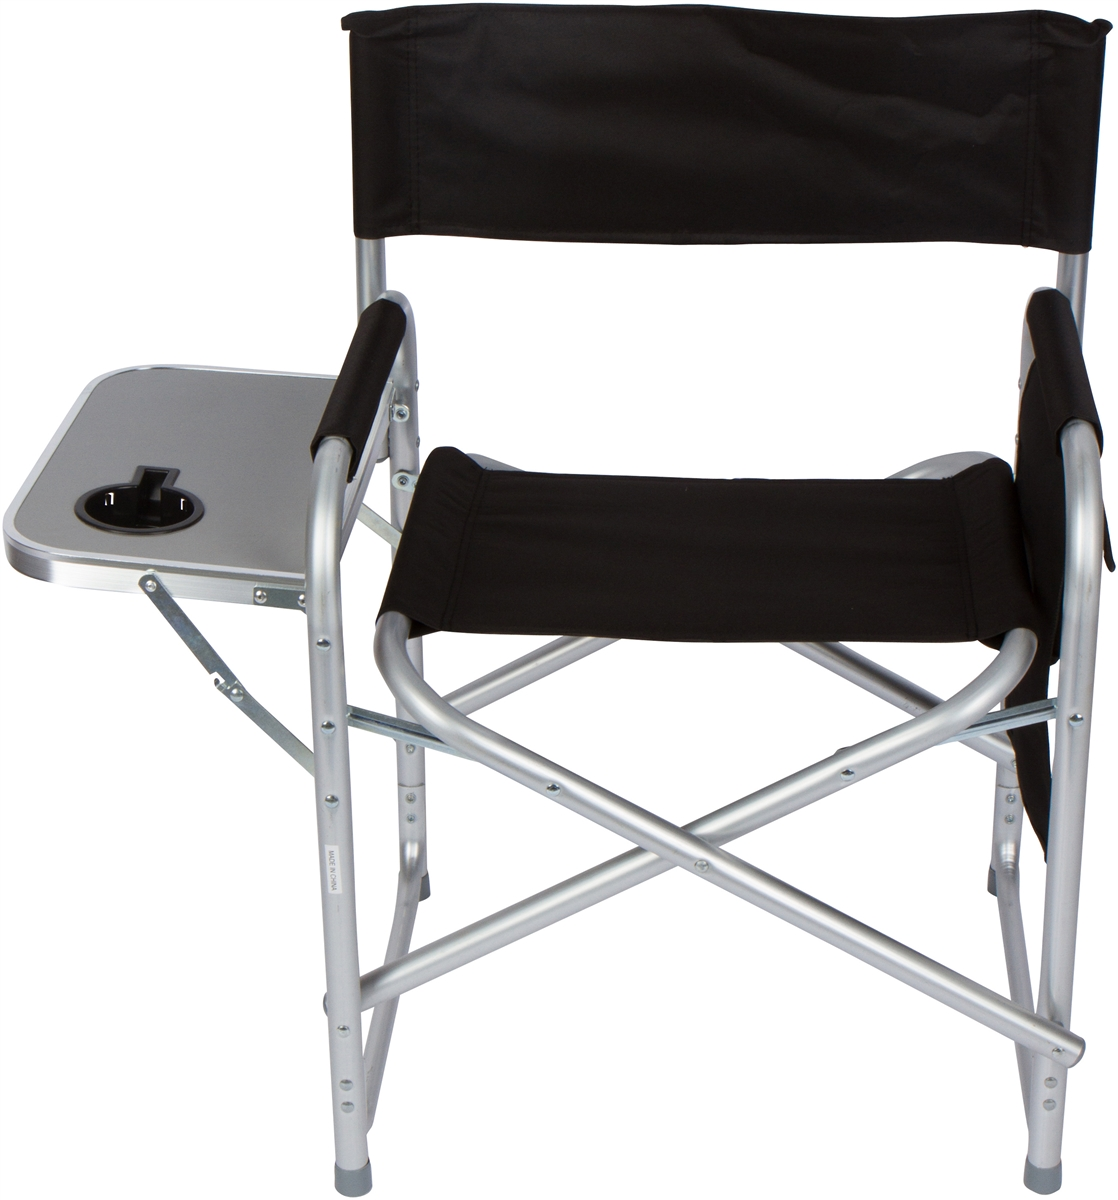 Folding Directors Chair with Aluminum Side Table Storage